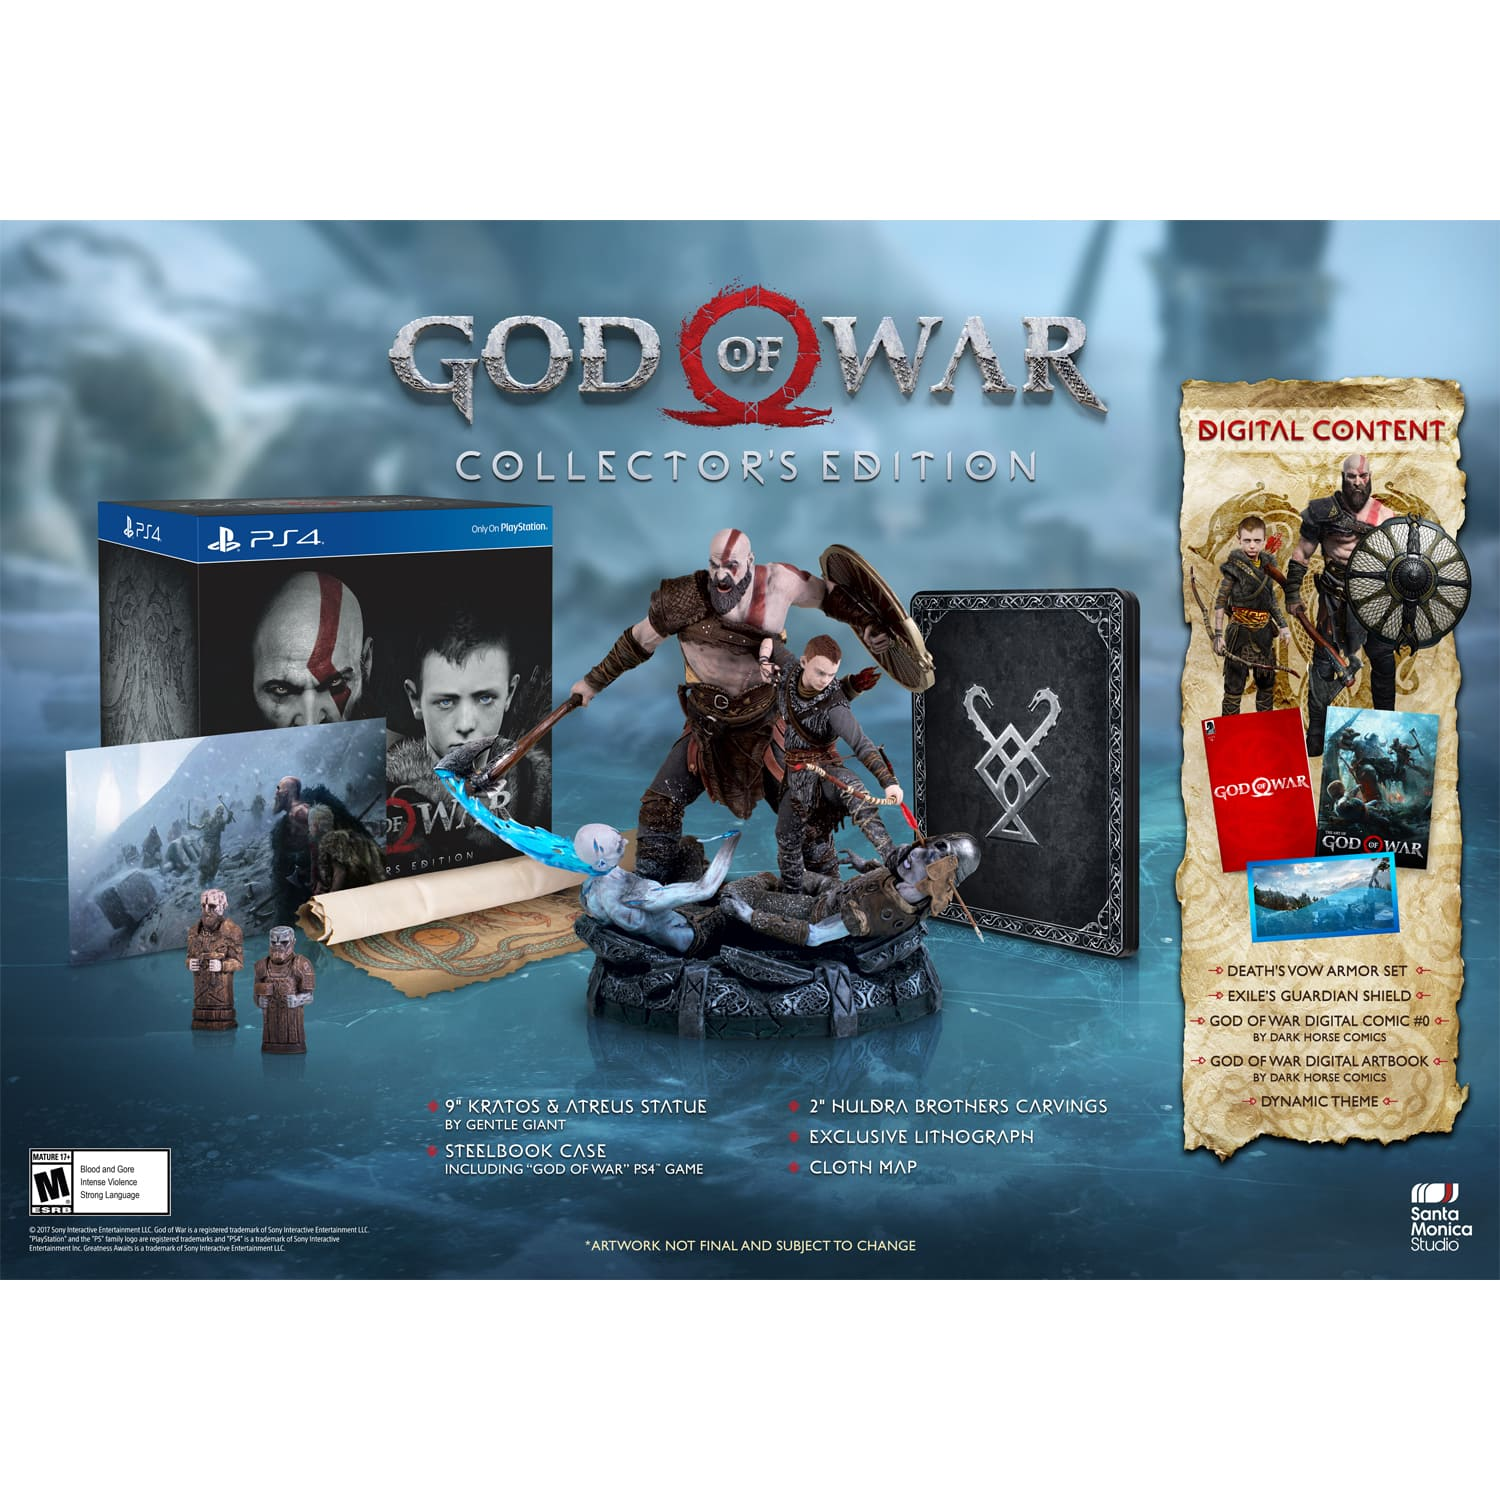 God of War Collector's Edition for 79.97 and 5$ shipping at Costco **Members Only** $85